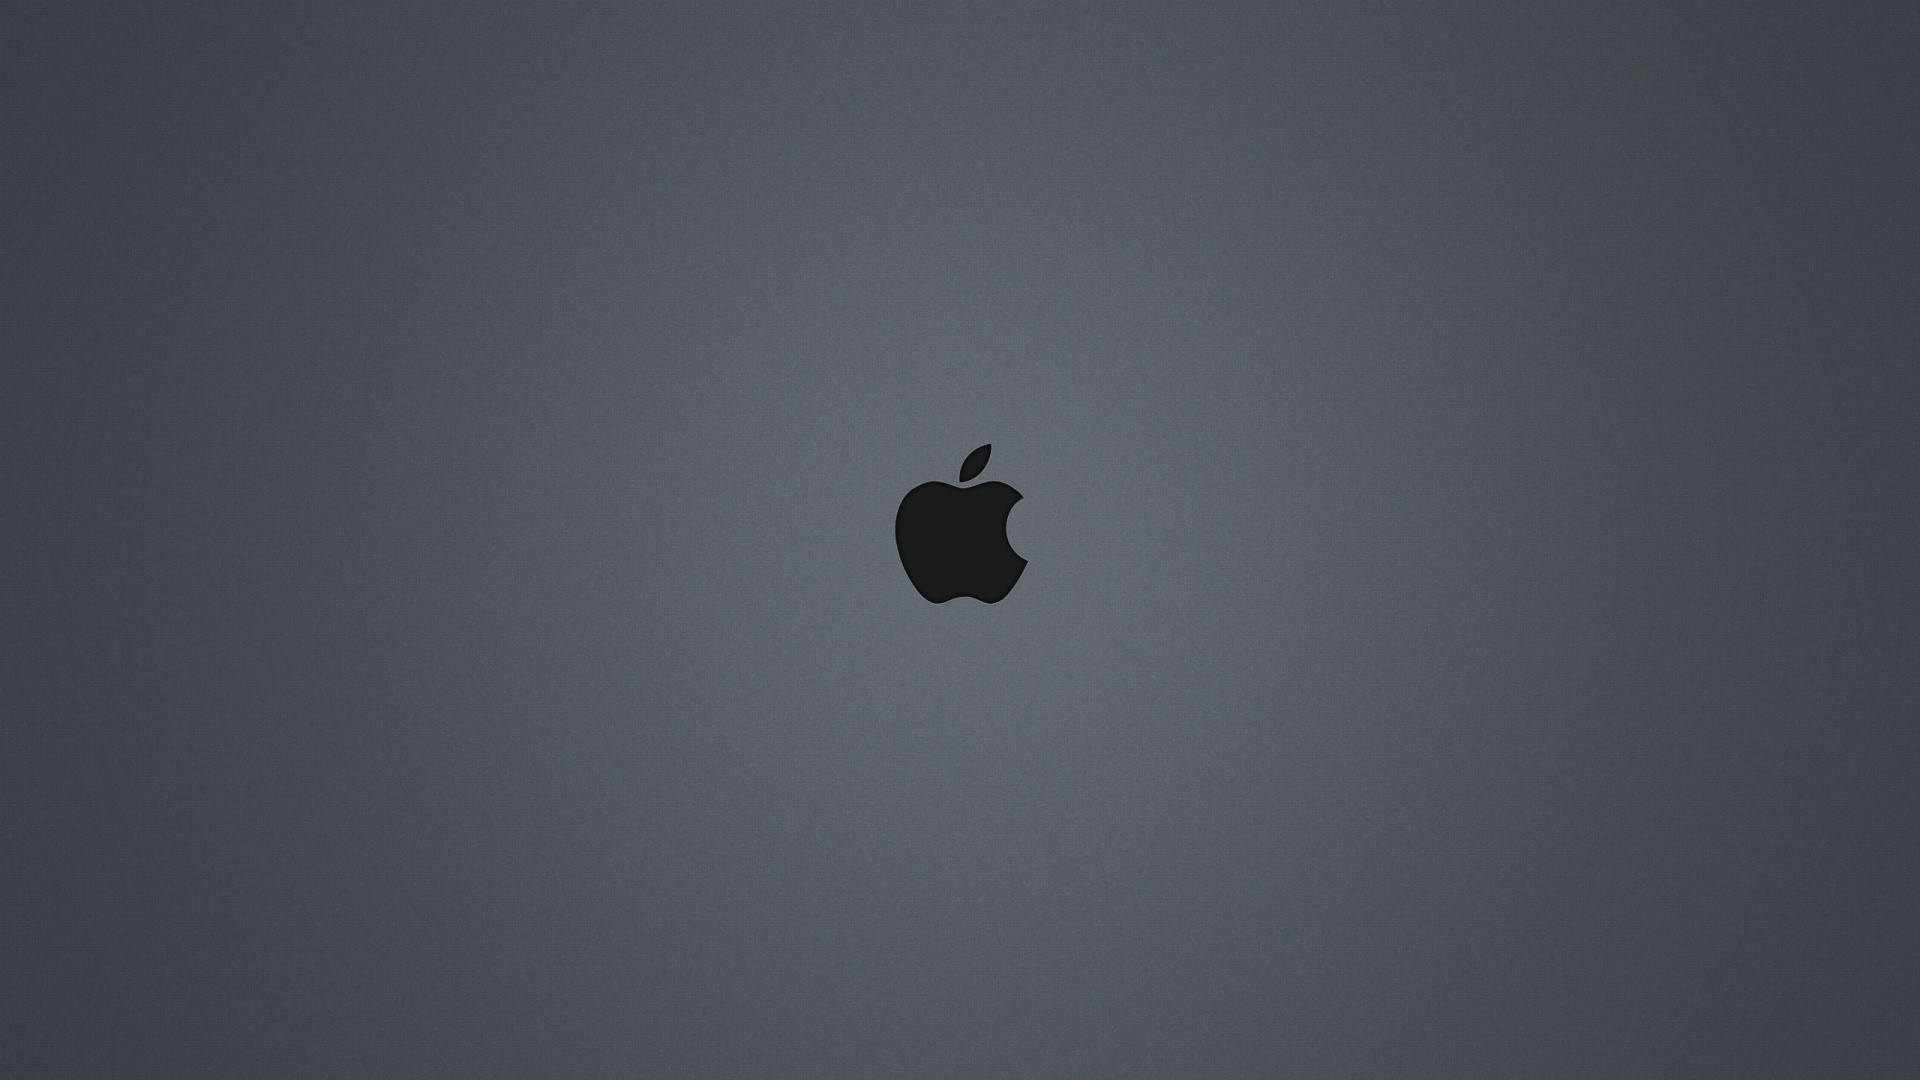 Apple Mac Wallpapers Hd: 36+ Apple Wallpapers ·① Download Free Cool HD Backgrounds